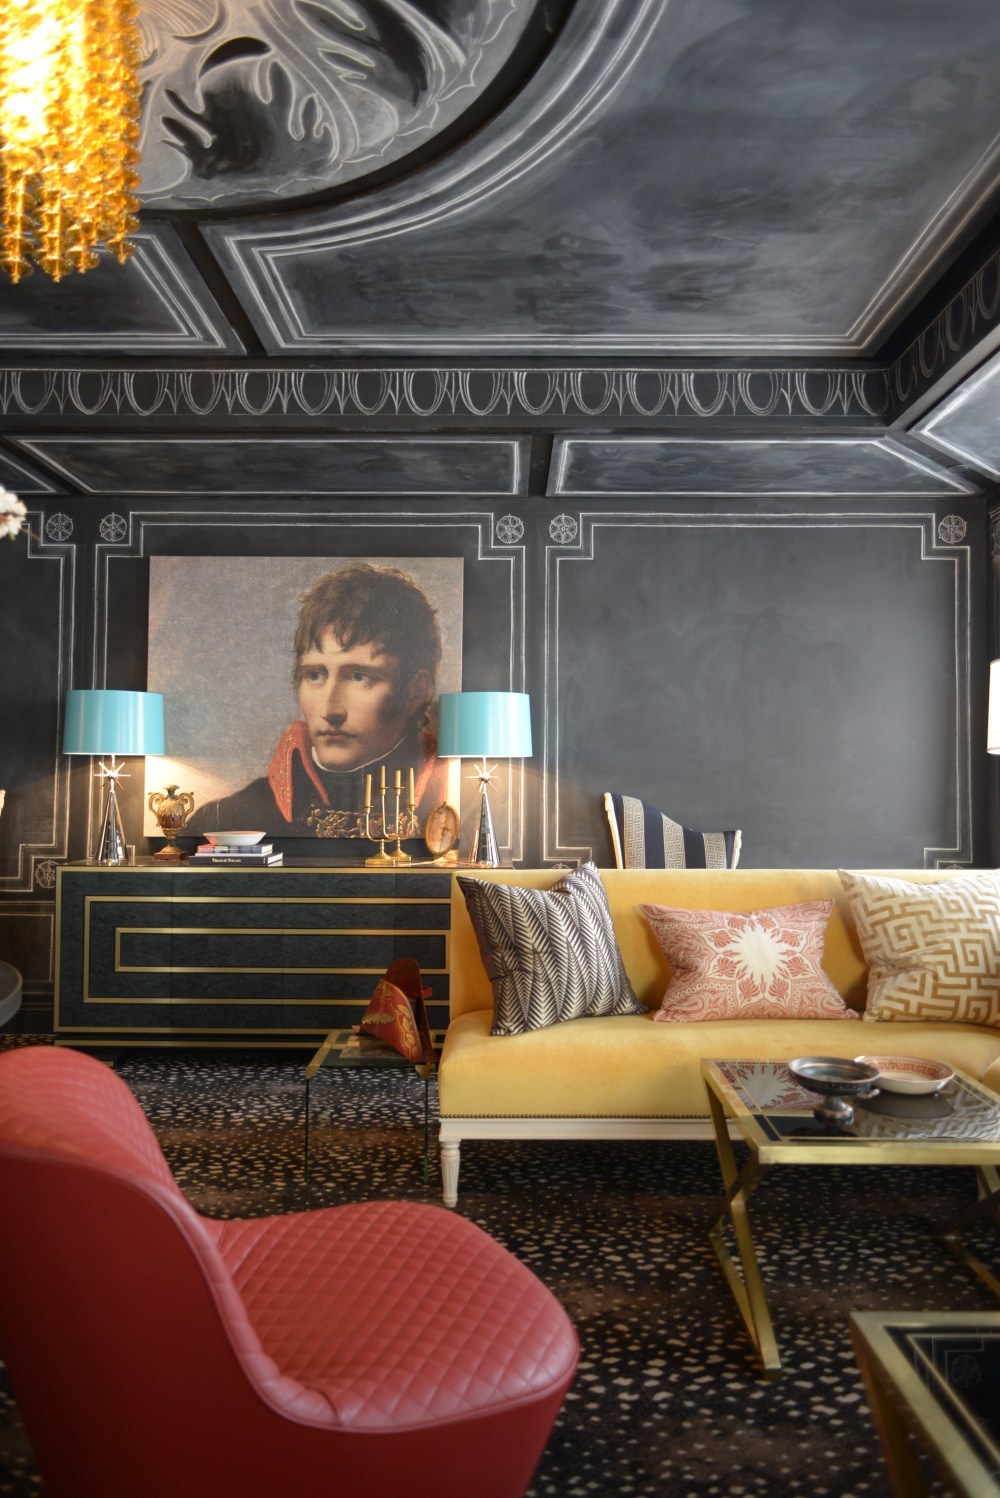 Chalk paint and drawings become a talking point and elegant feature in this lounge. Garrow Kedigian